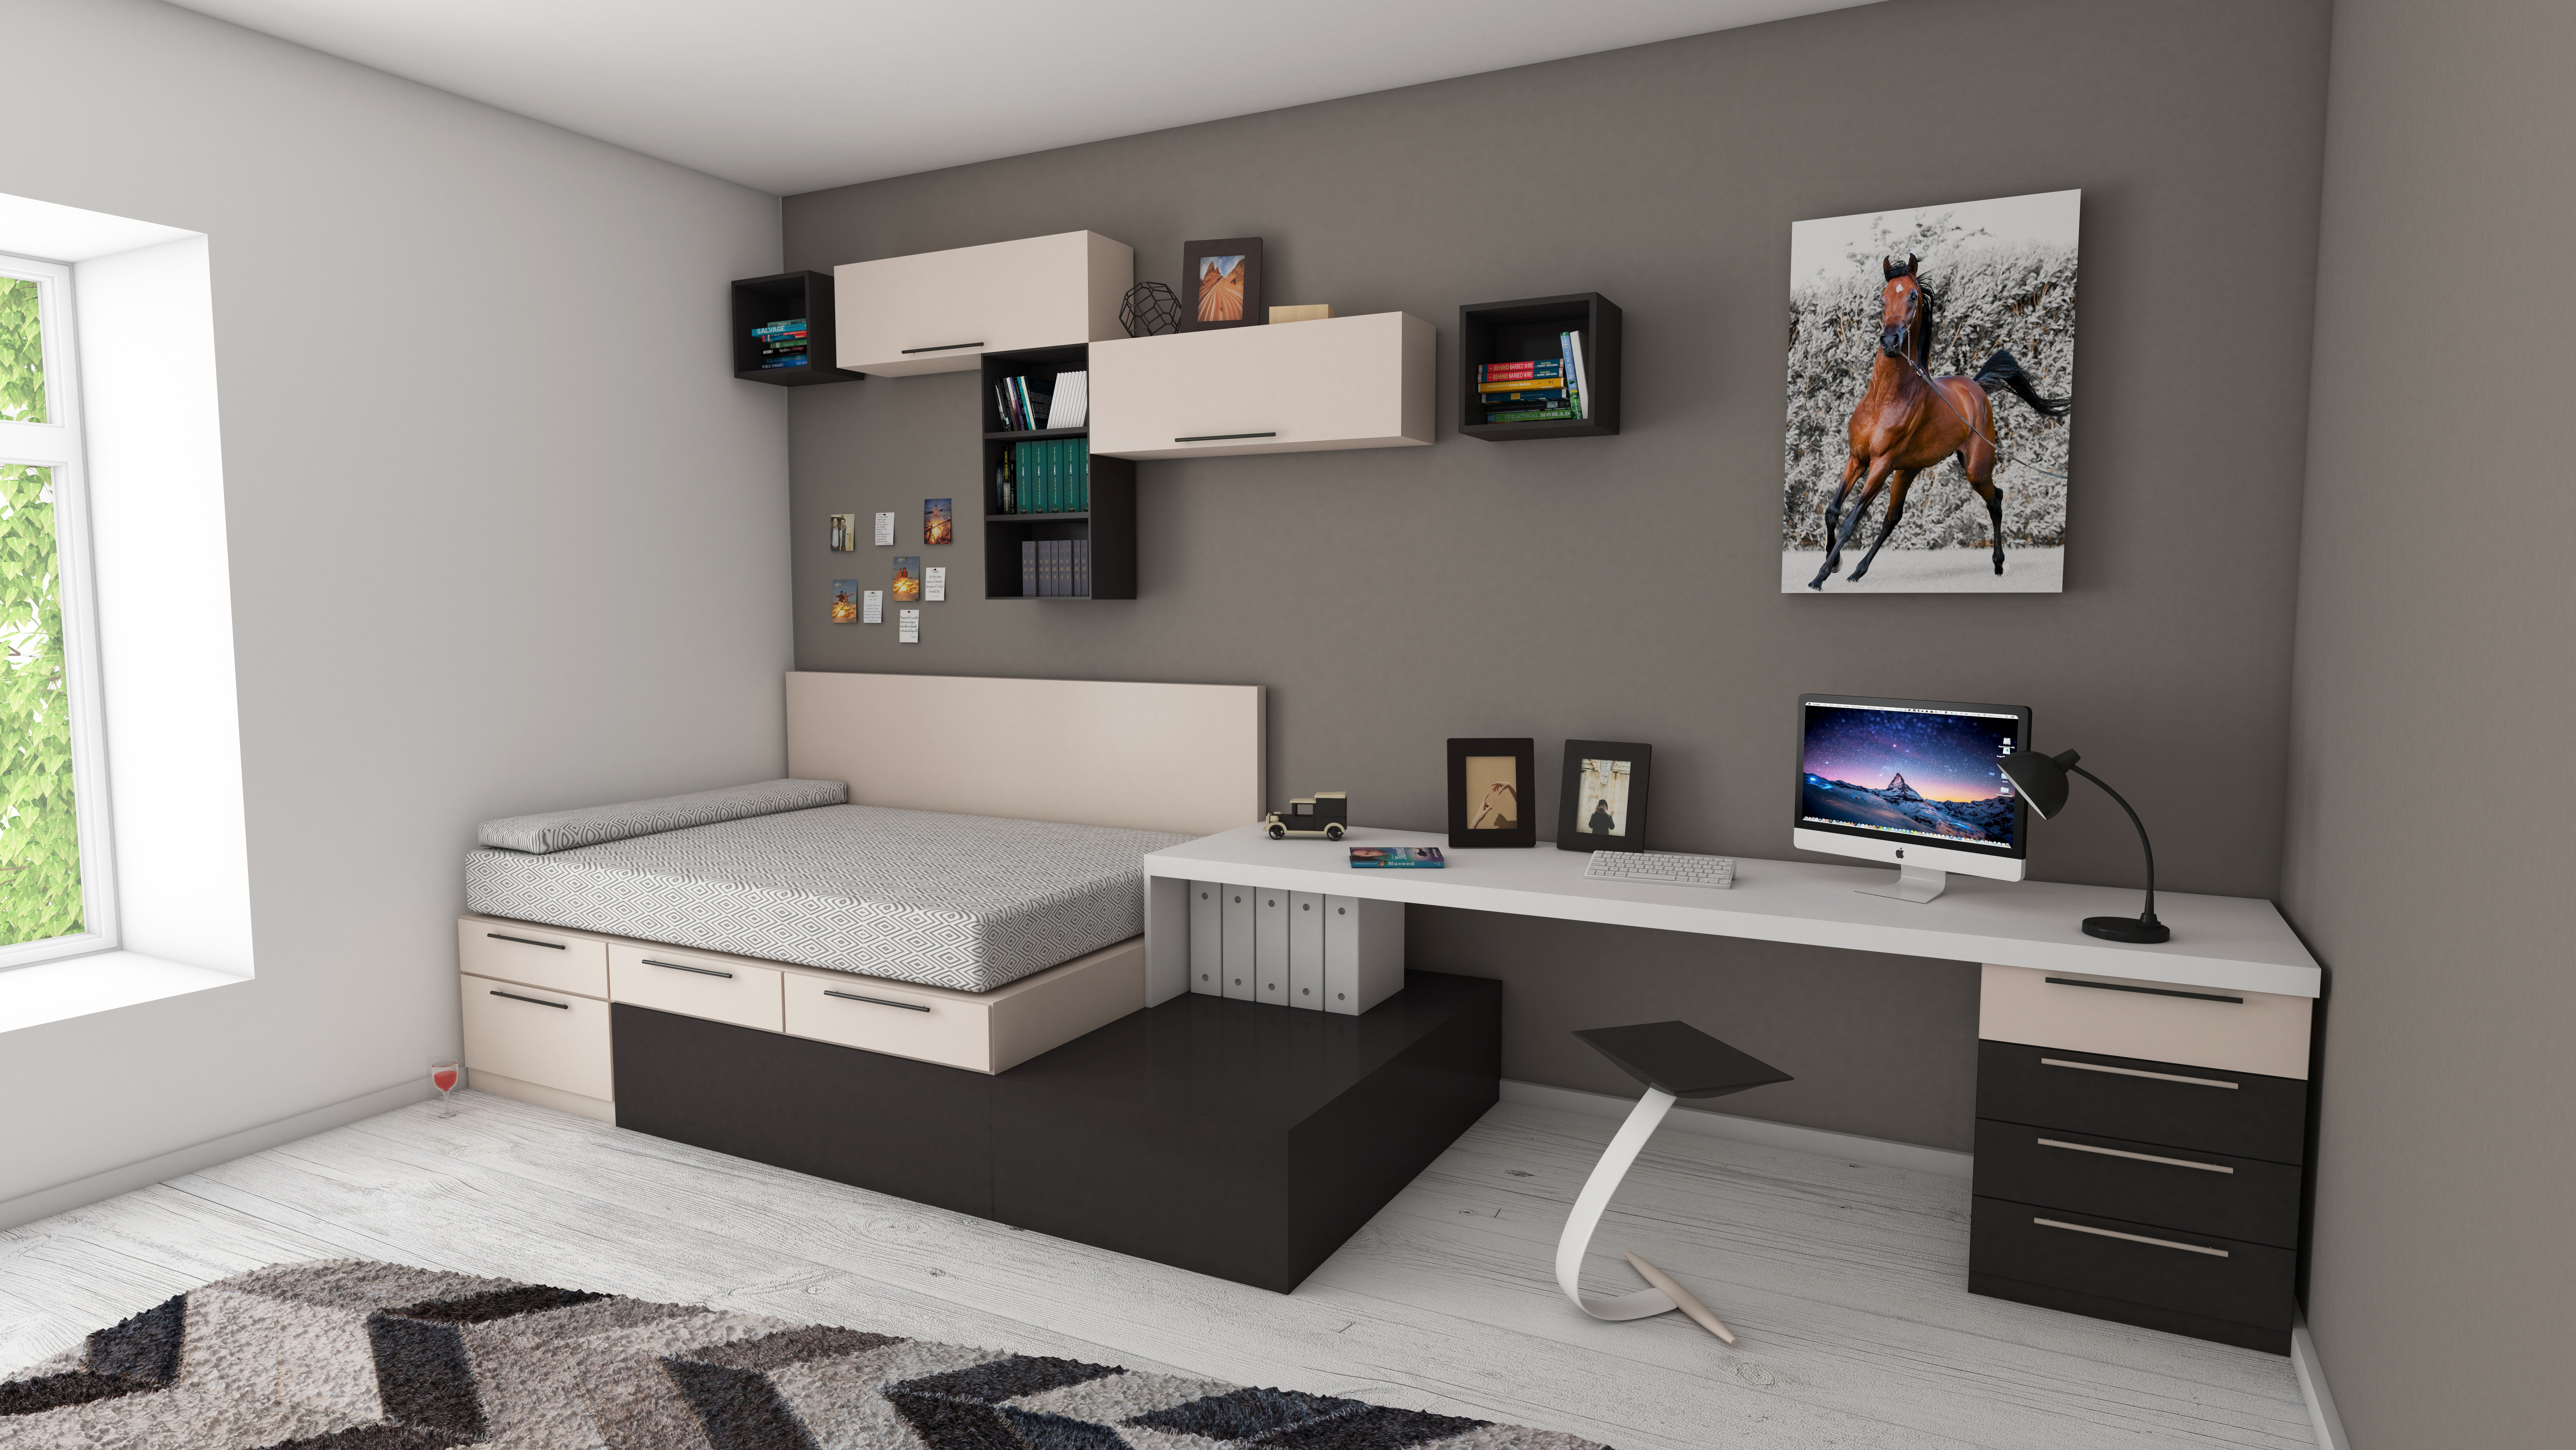 Bed Room with Book Shelves